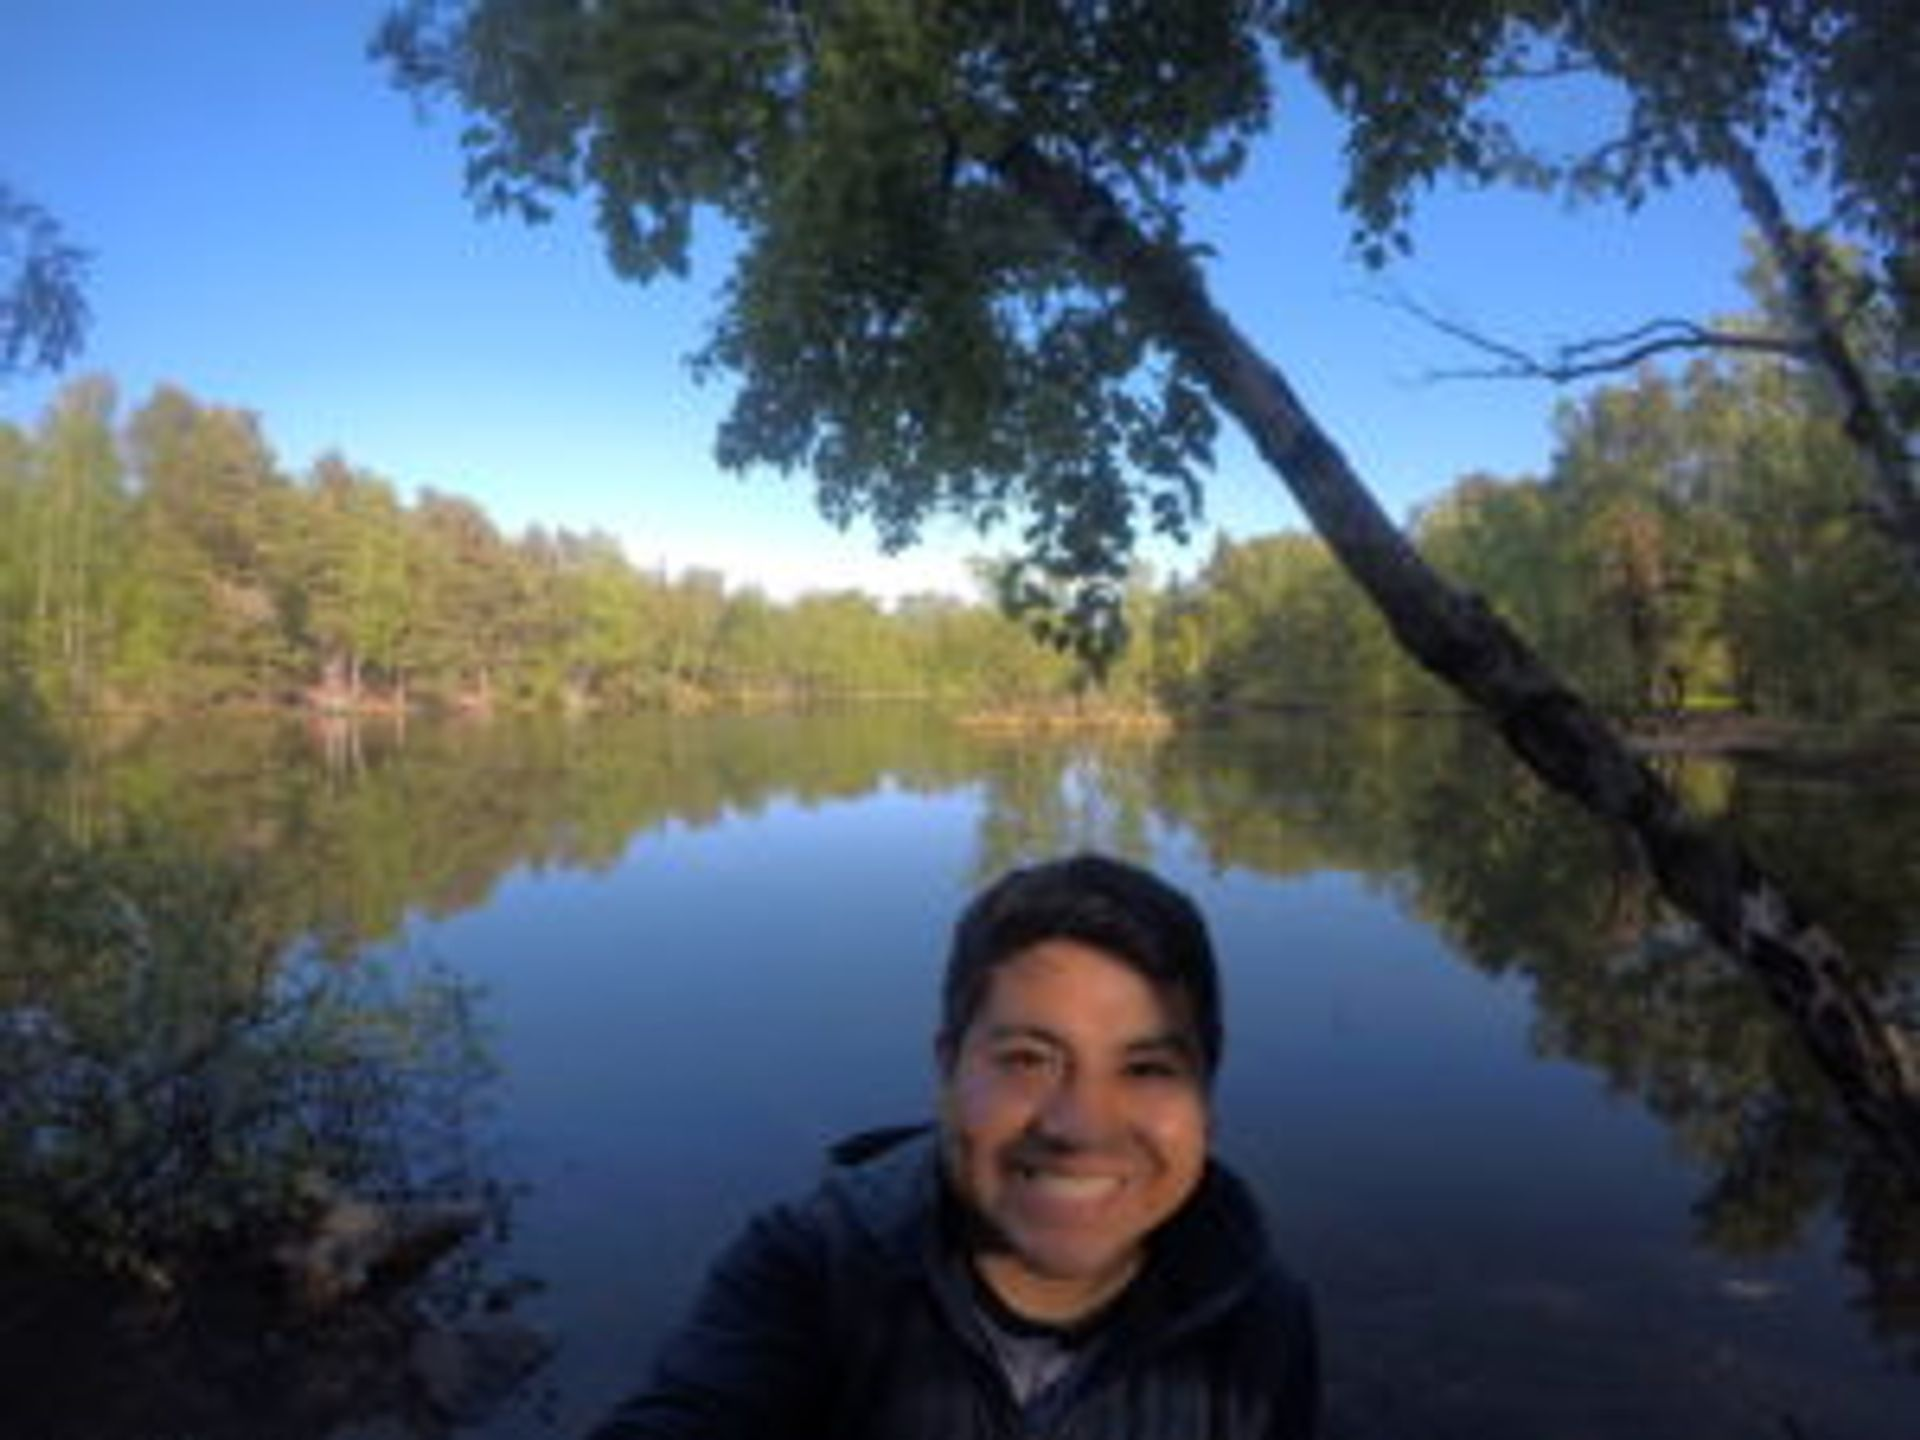 Camilo takes a selfie in front of the lake.